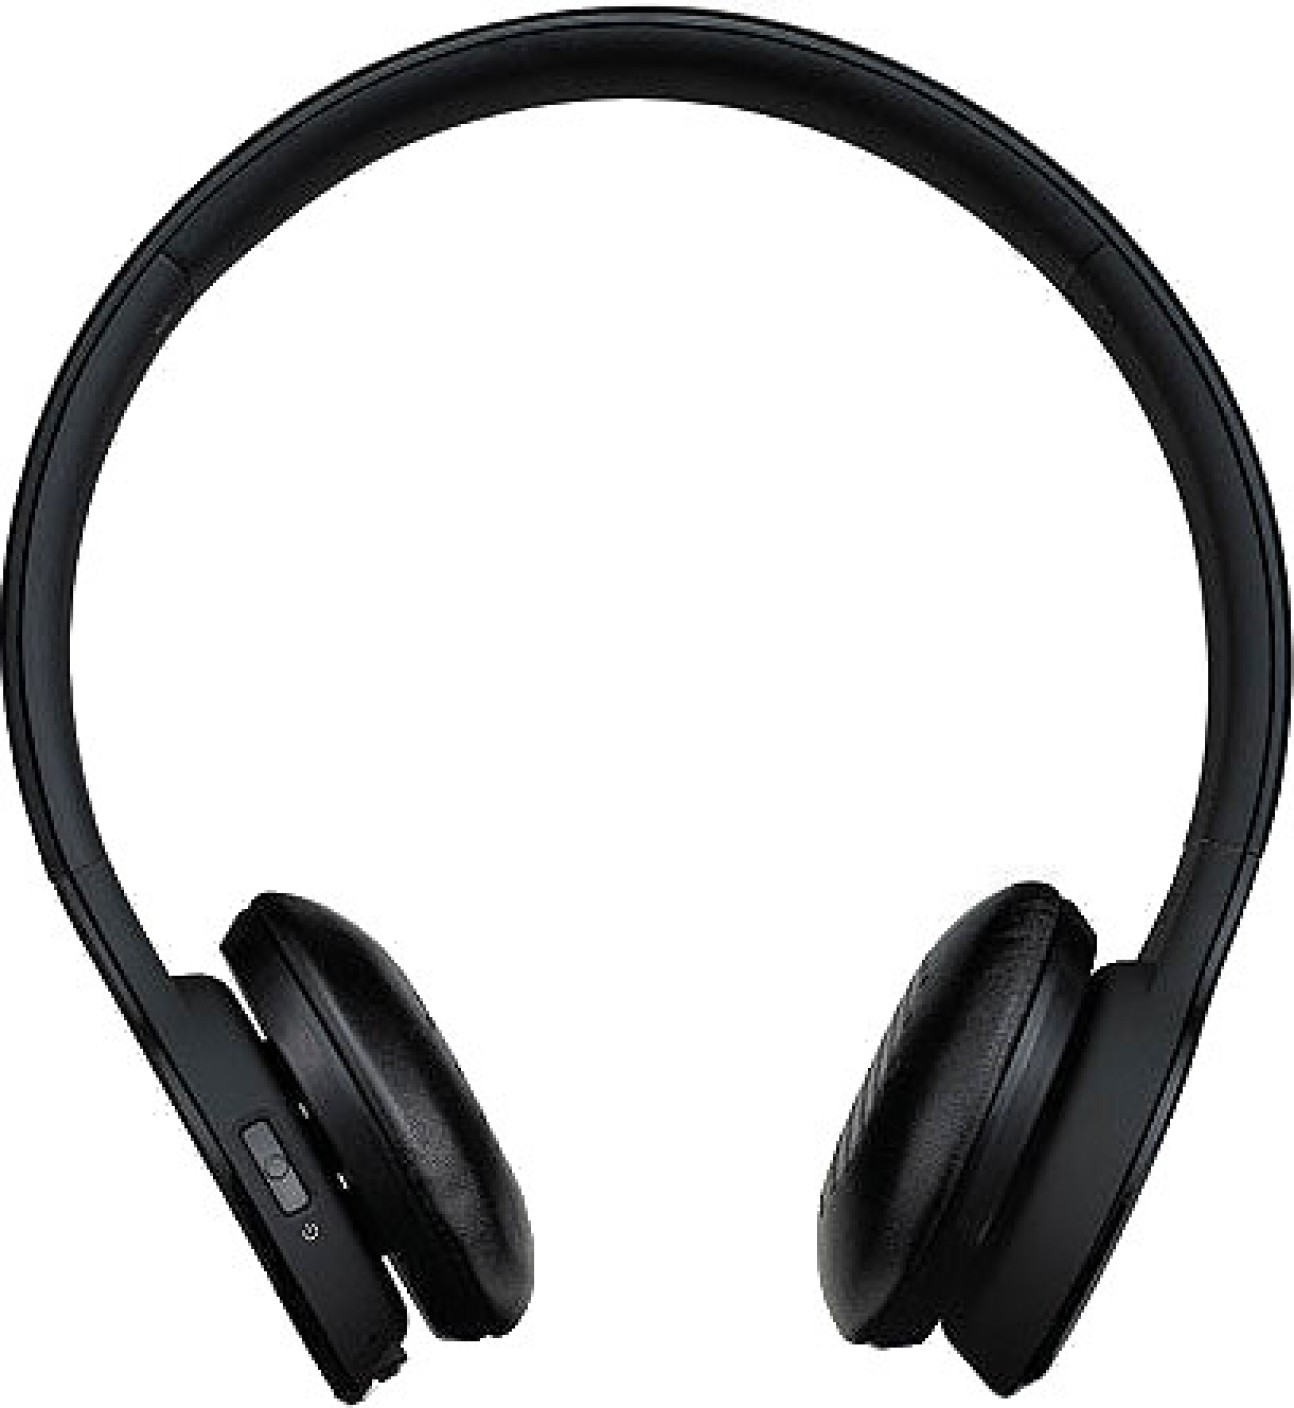 Rapoo Bluetooth Stereo Headset H6060 Bluetooth Headset With Mic Price In India